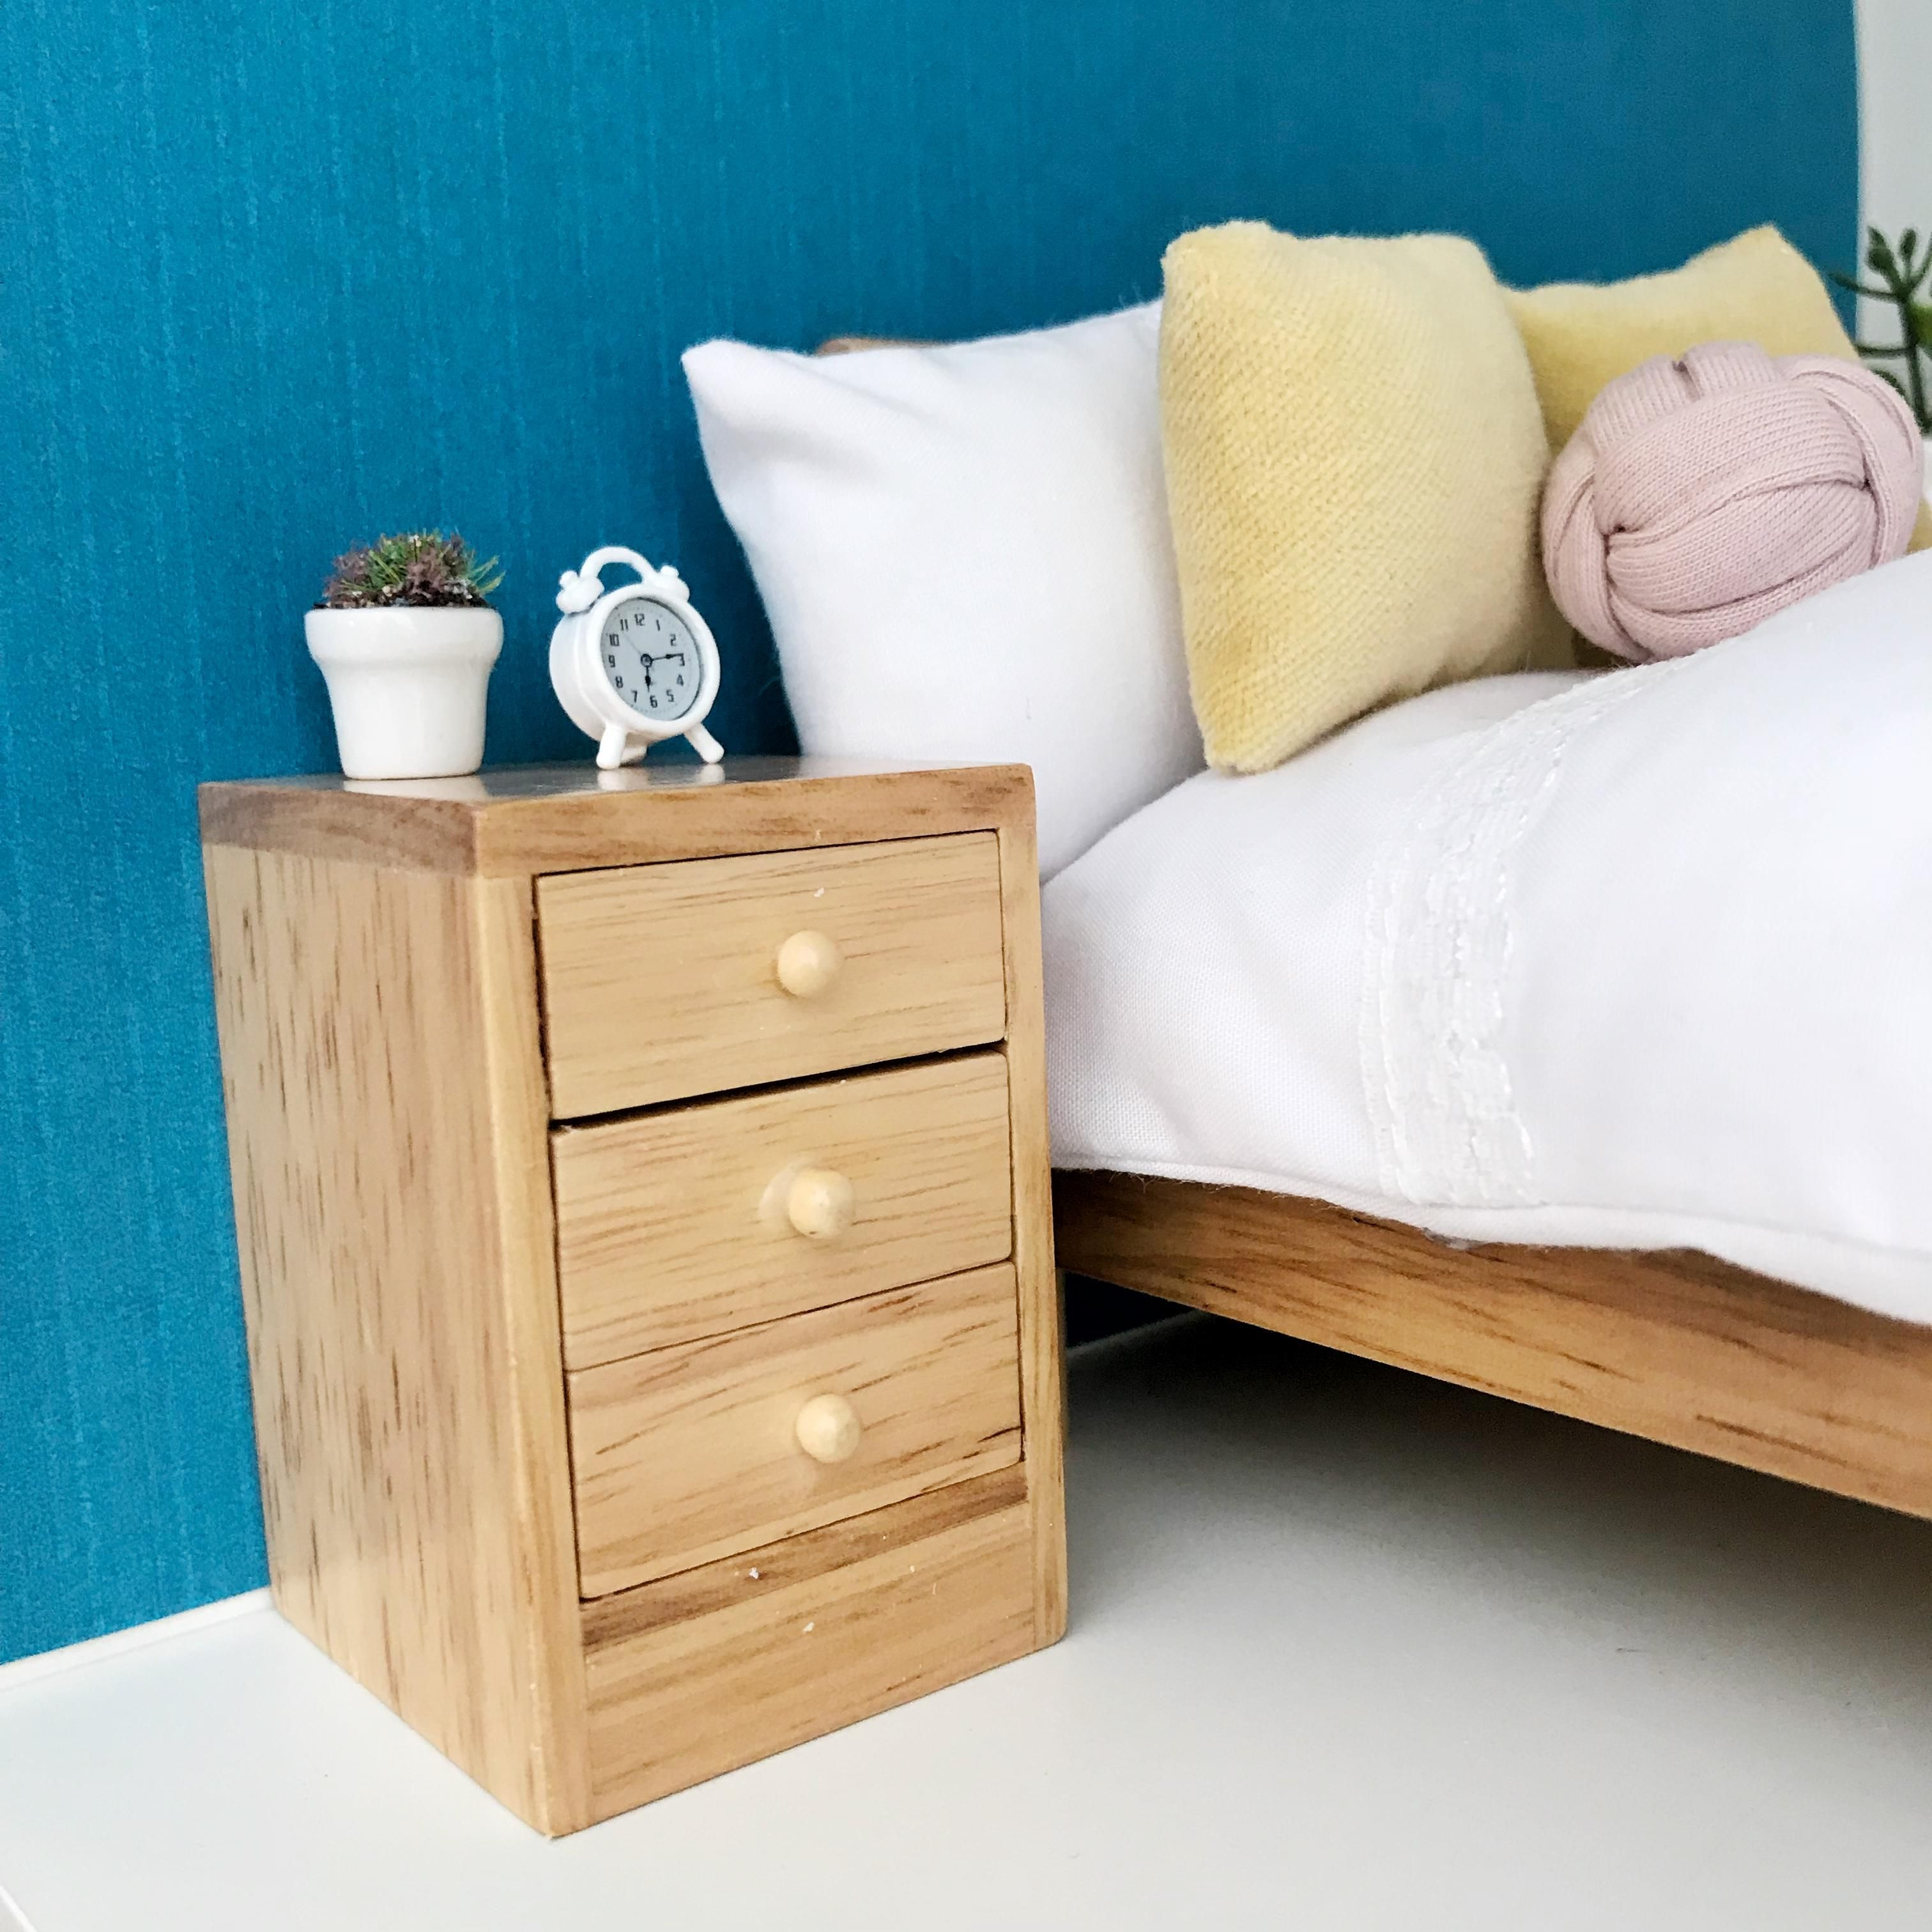 Single Light Wood Bedside Table With 3 Drawers The Drawers Open